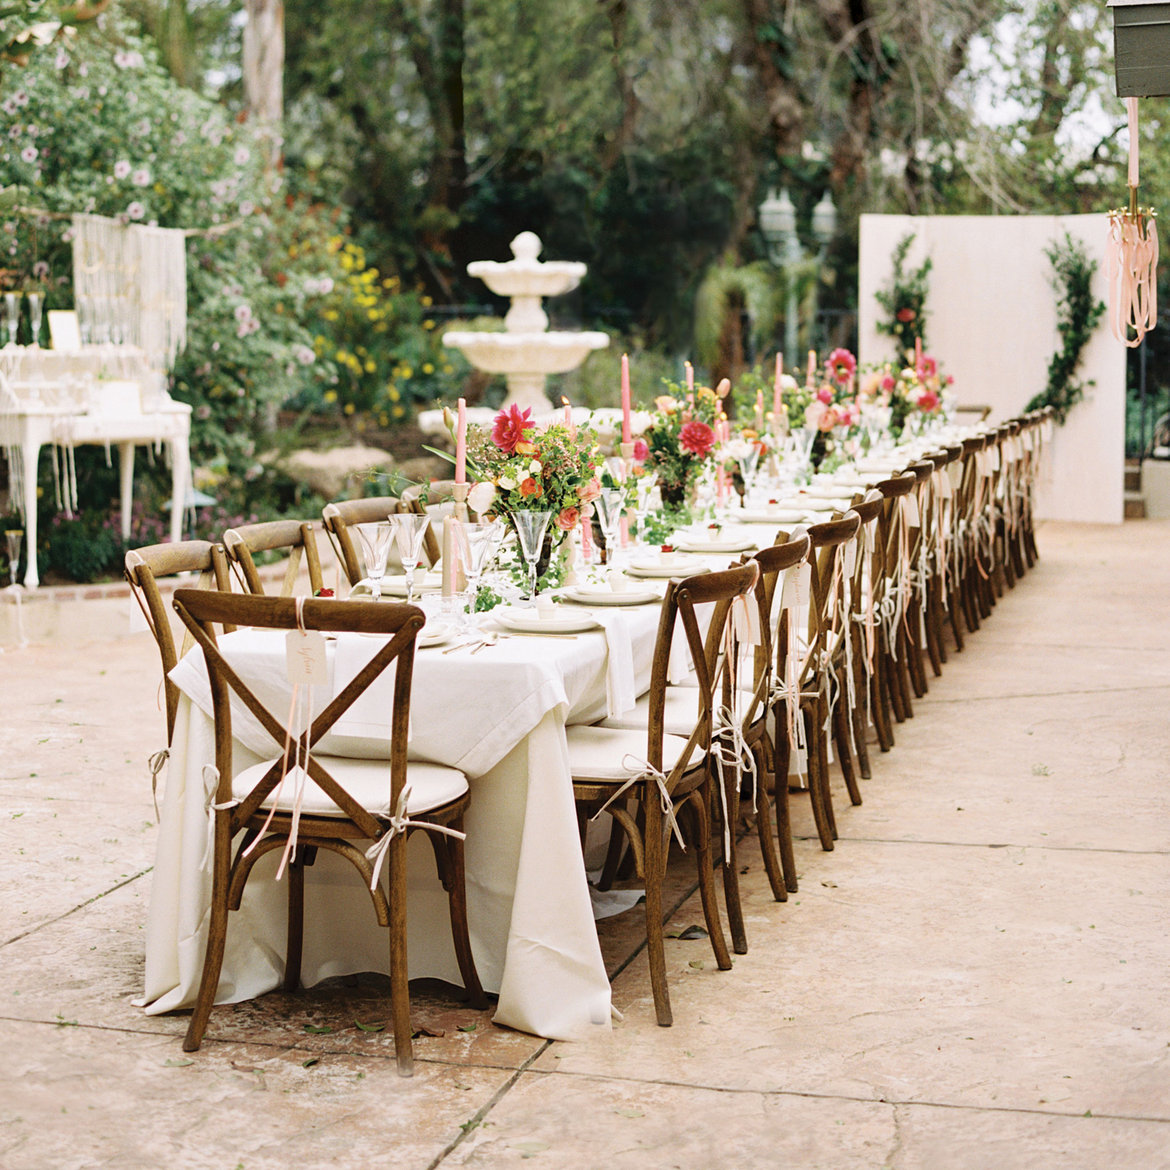 Garden Themed Wedding: A Romantic Garden-Themed Bridal Shower BridalGuide